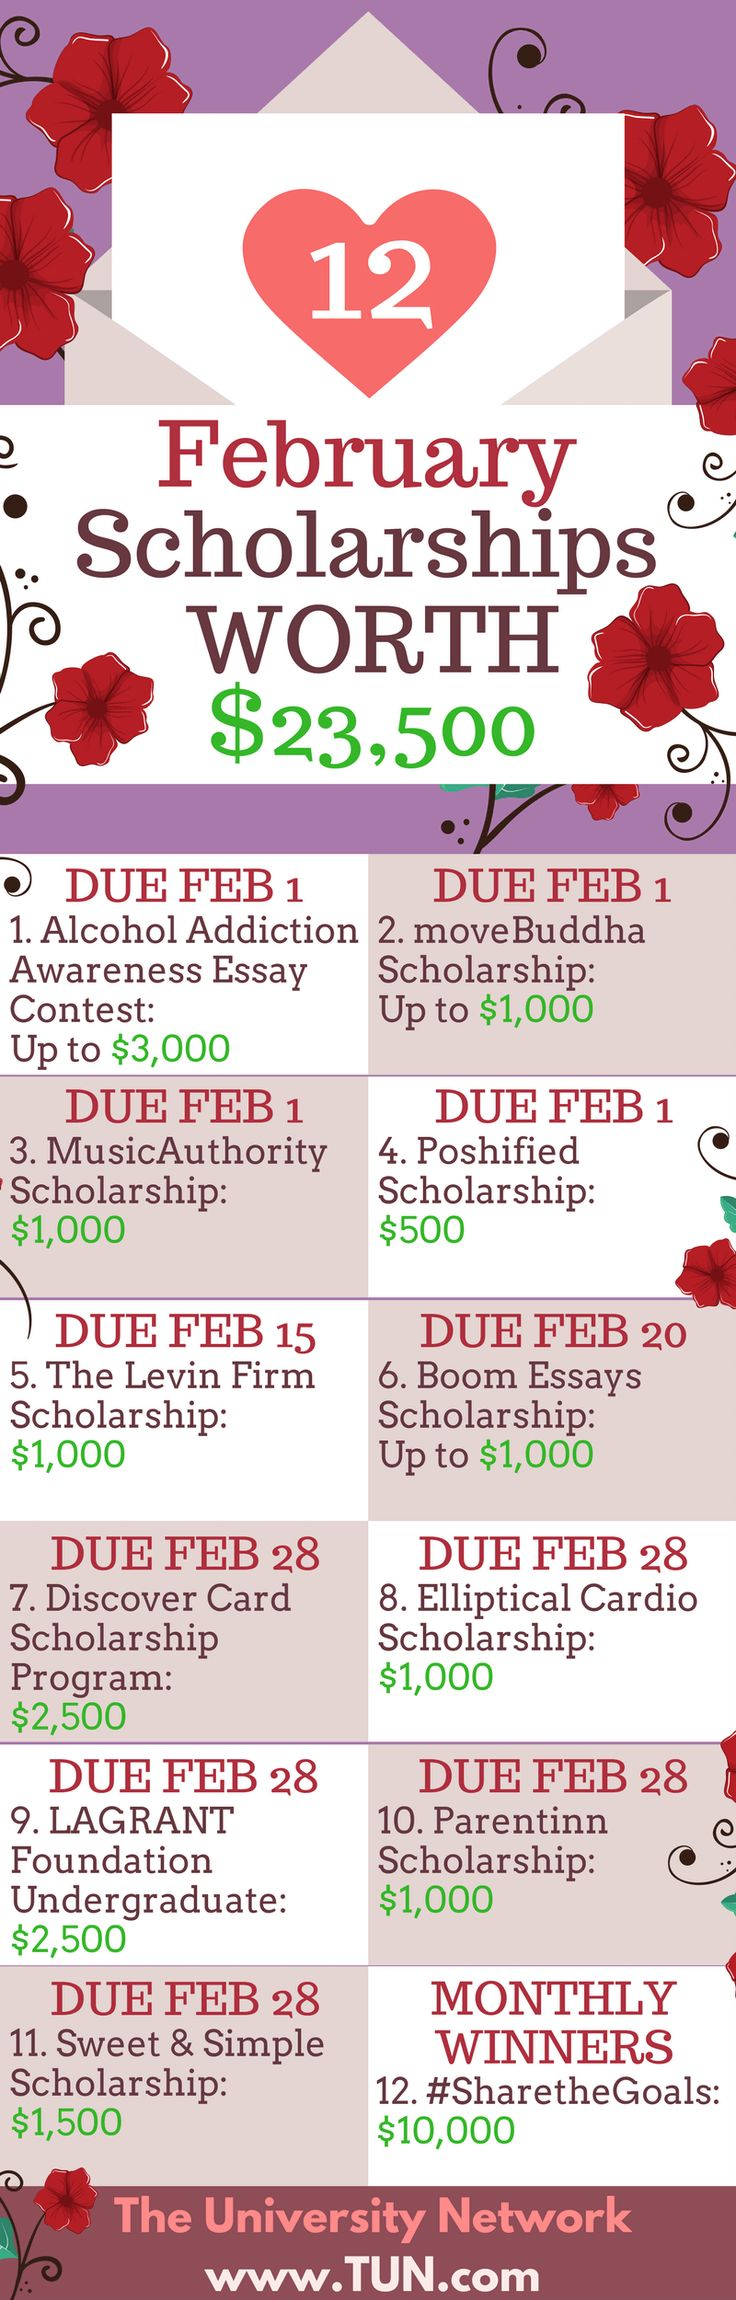 Wow, January really flew by...! Here are 12 scholarships with February deadlines - apply away before the month flies by! 1. Alcohol Addiction Awareness Essay Contest – Up to $3,000 – Apply annually by February 1 Alcorehab knows the dangers of alcohol and addiction, and is offering this scholarship to raise awareness. If you are concerned with the effects of alcohol abuse and addiction, share your vision and enter for a chance to win up to $3,000 toward your educational expenses! 2…